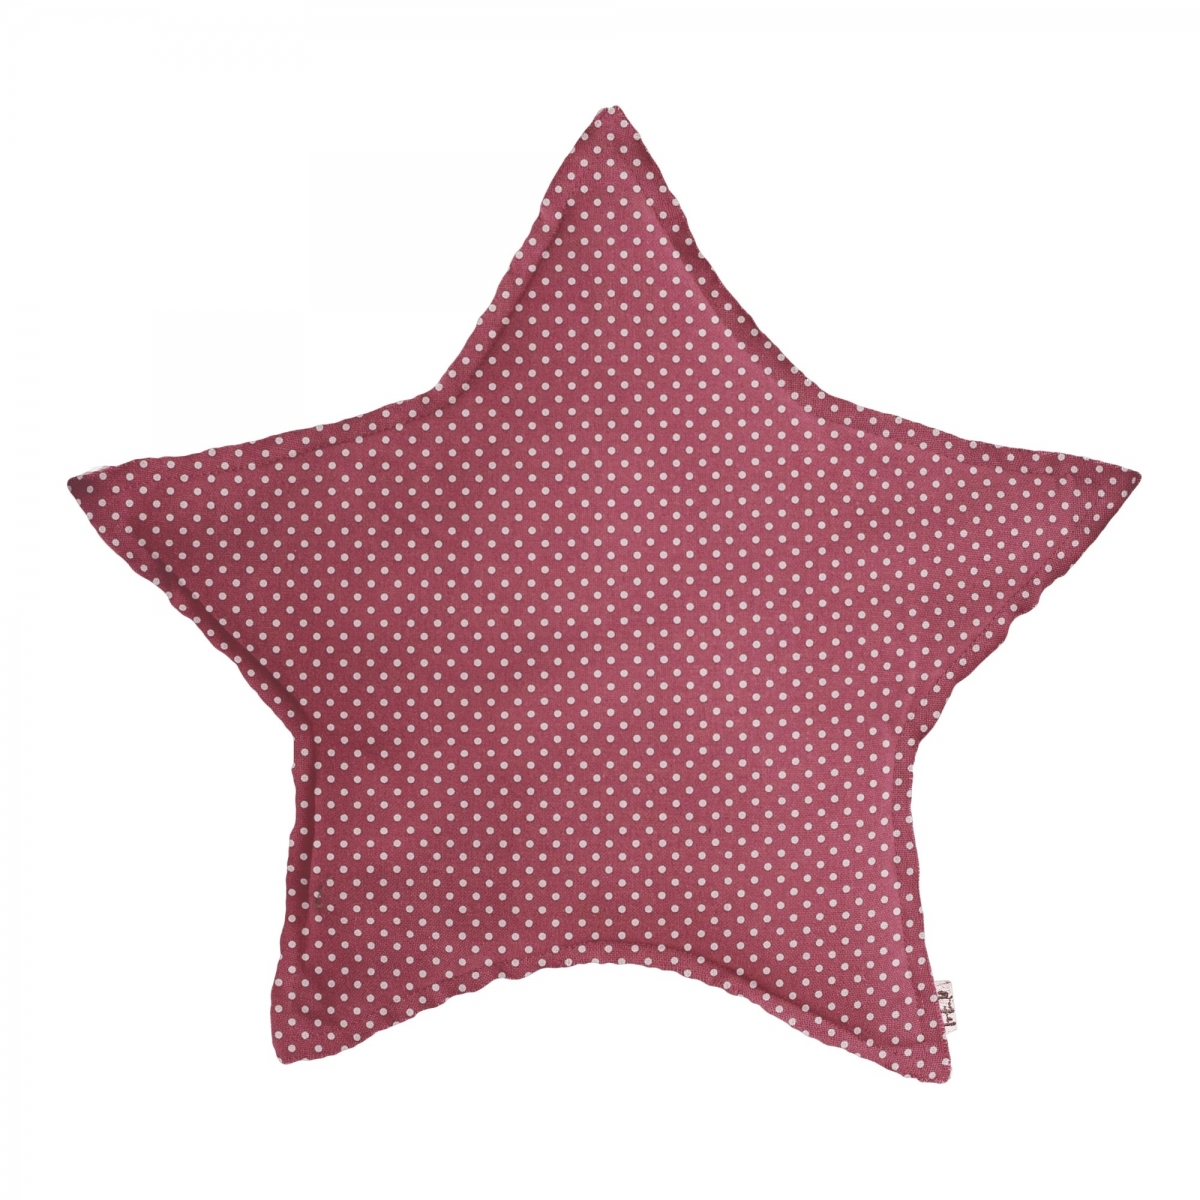 Star cushion rose with white dots - Numero 74